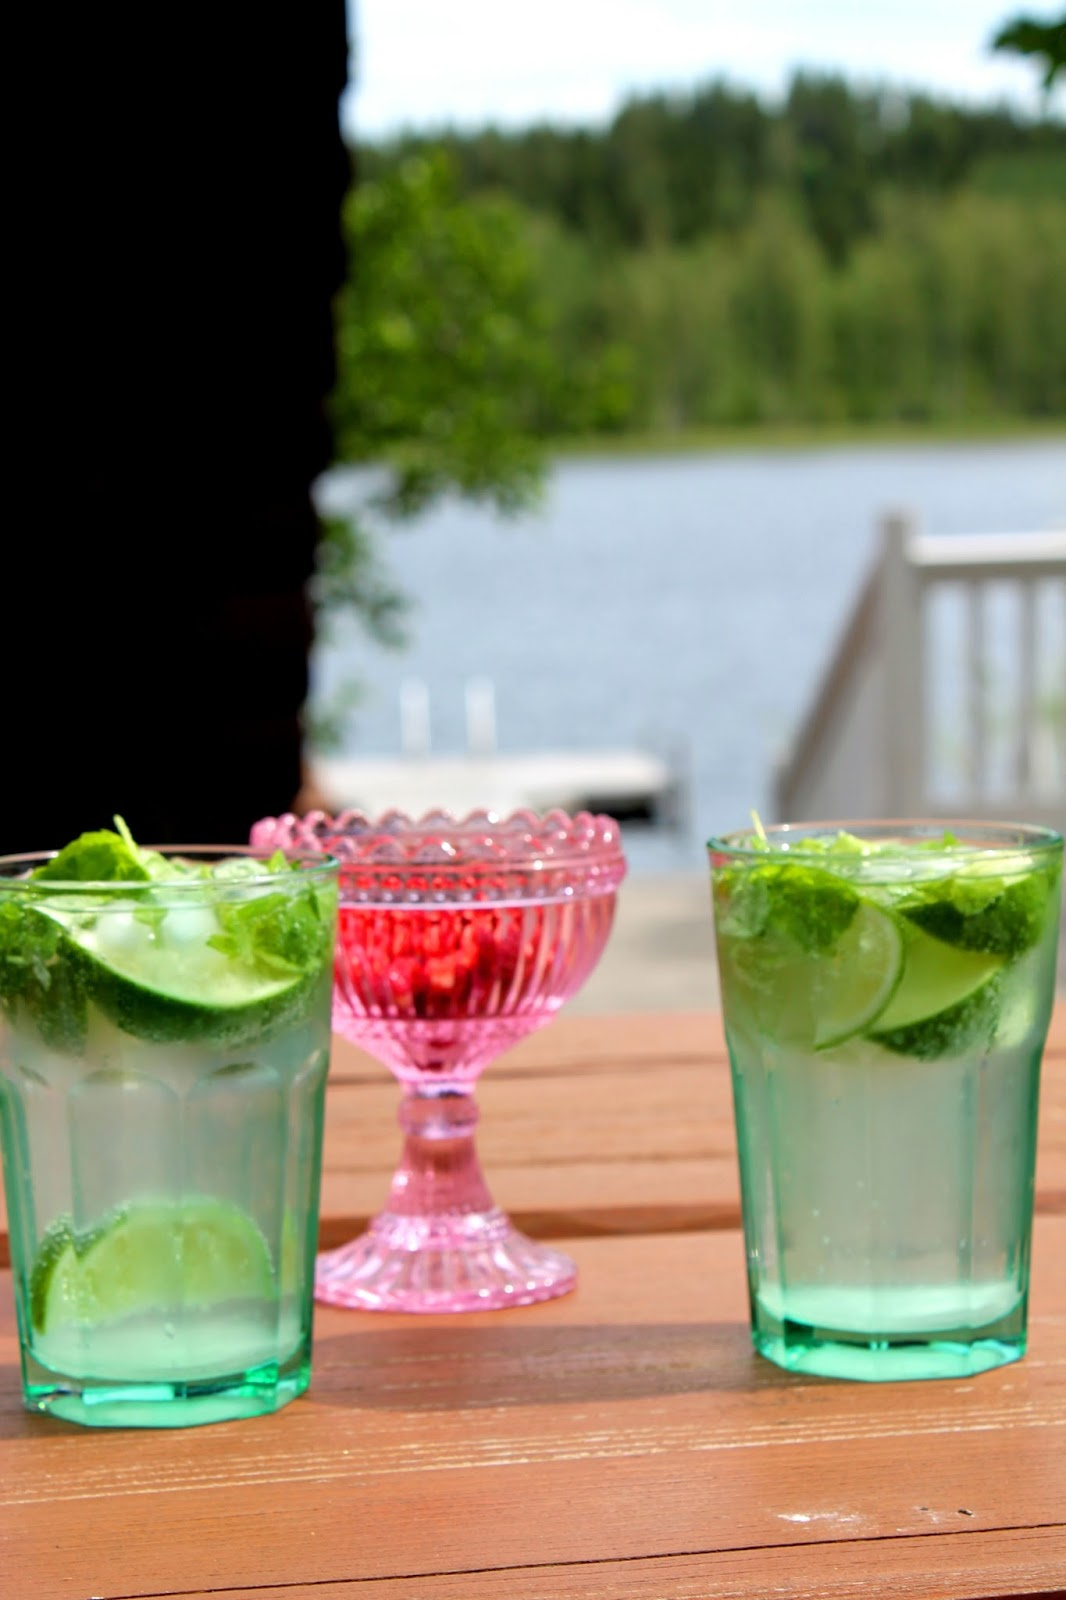 Summer in Finland: Lake Saimaa, drinking cooled drinks at terrace and forrest strawberries in Mariskooli